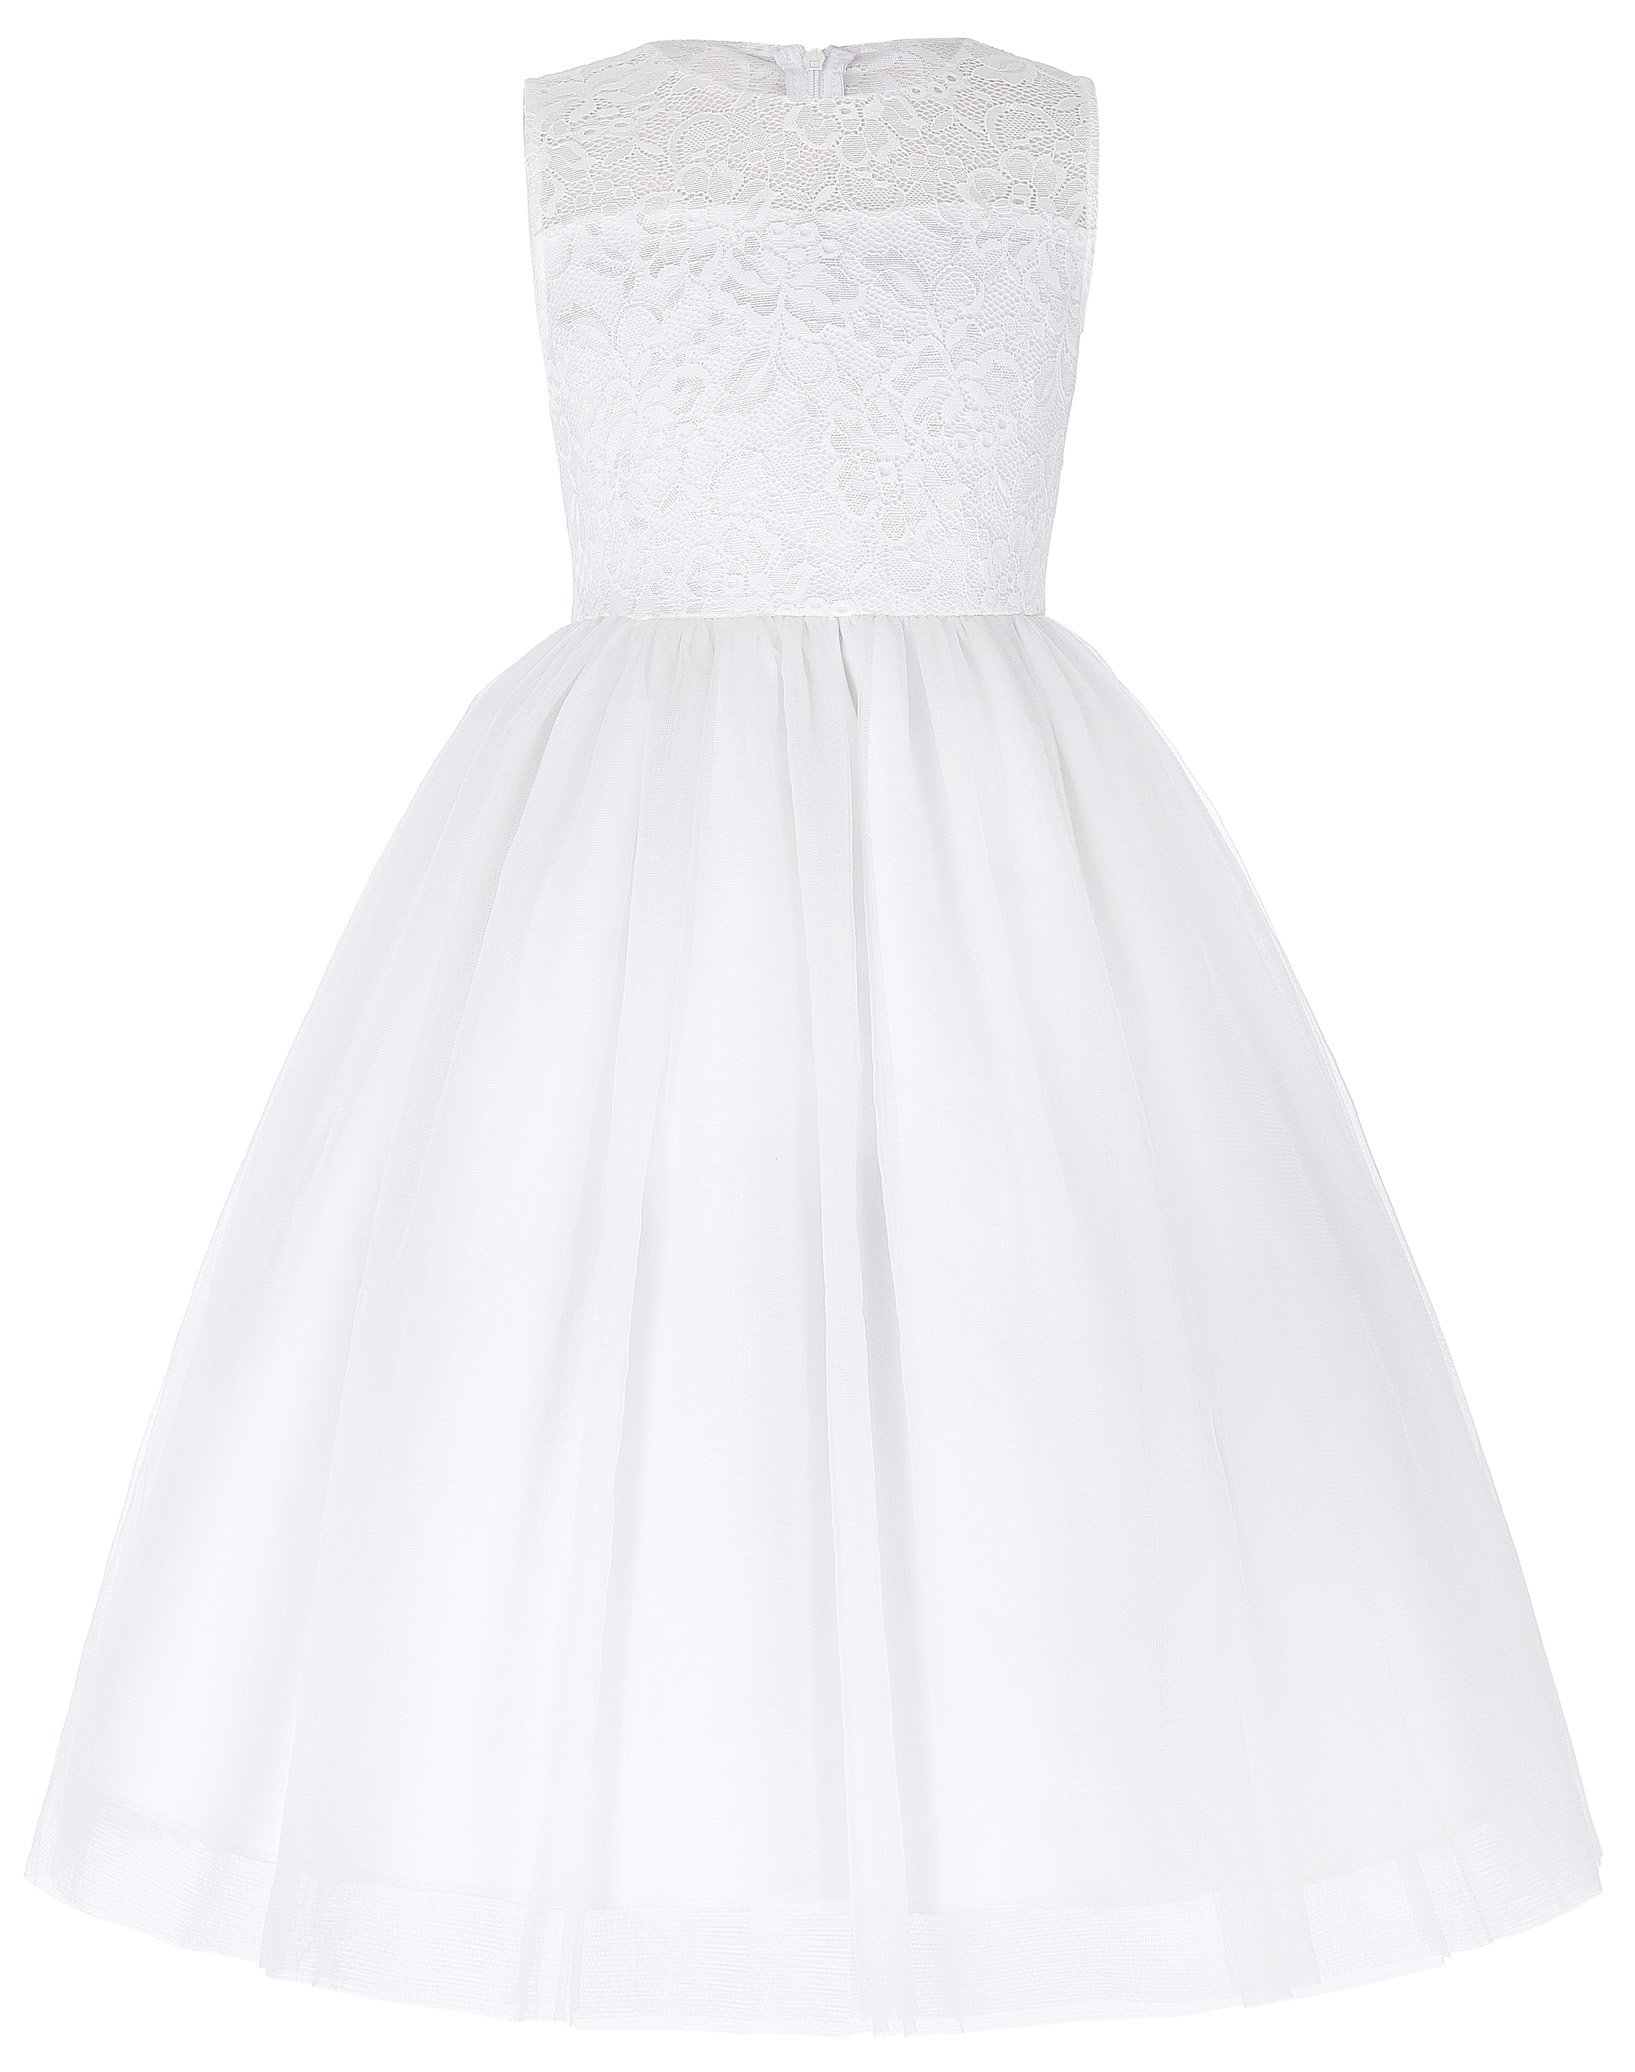 Tulle Flower Girl Party Dresses with Lace (8-9yrs) 8987-1